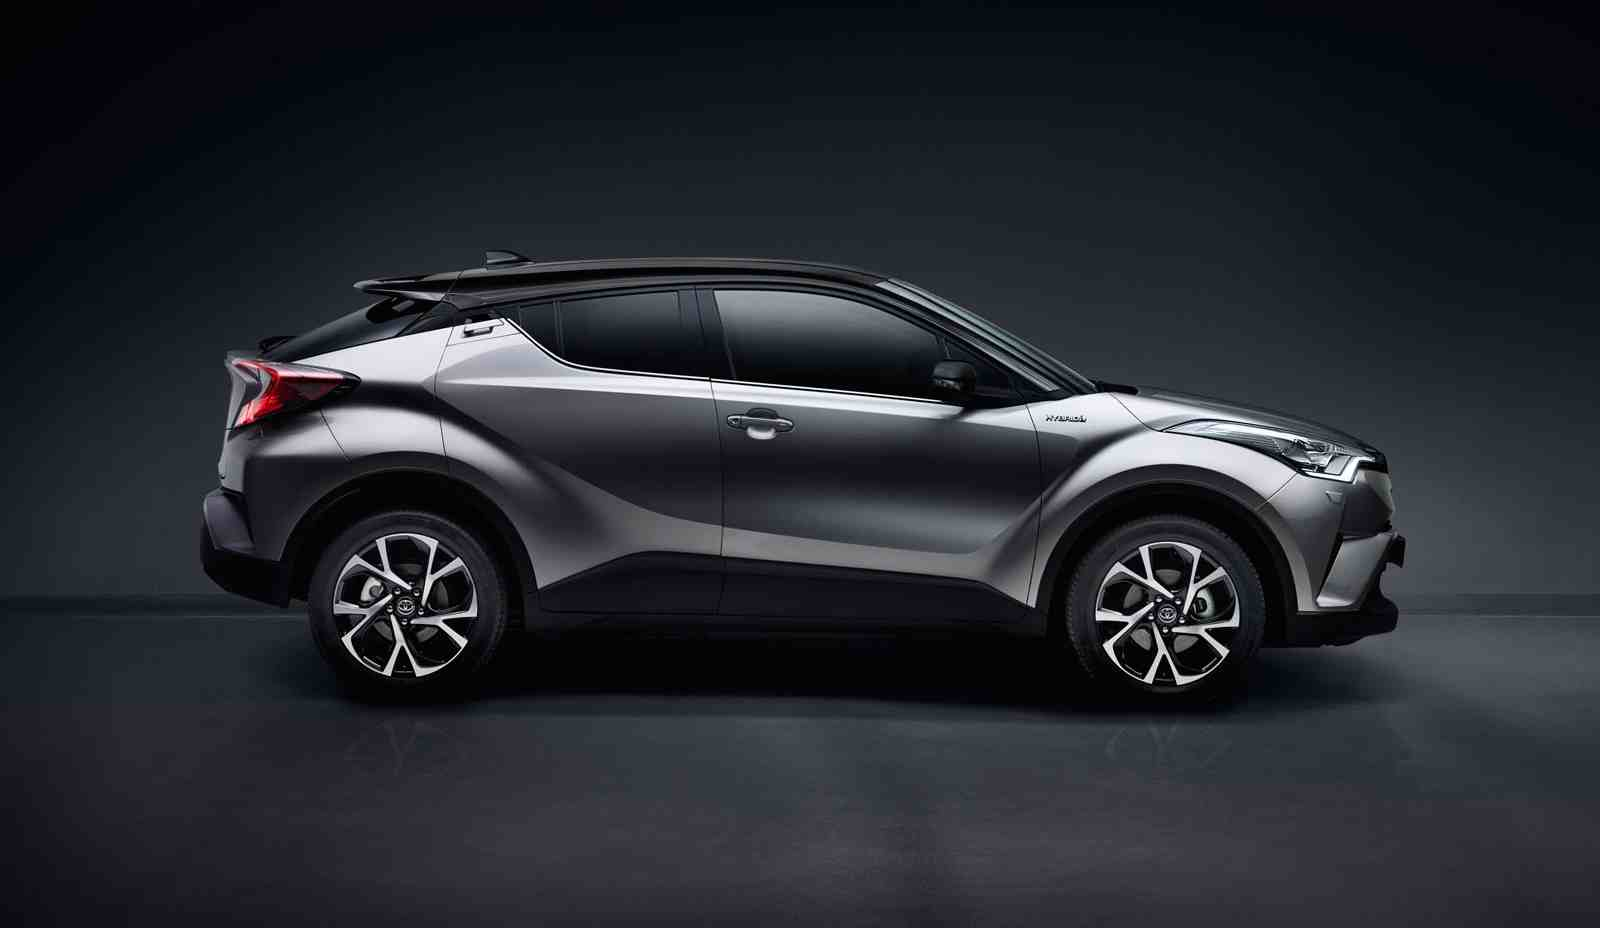 Toyota C-HR, exterior Silver, side view, black background.